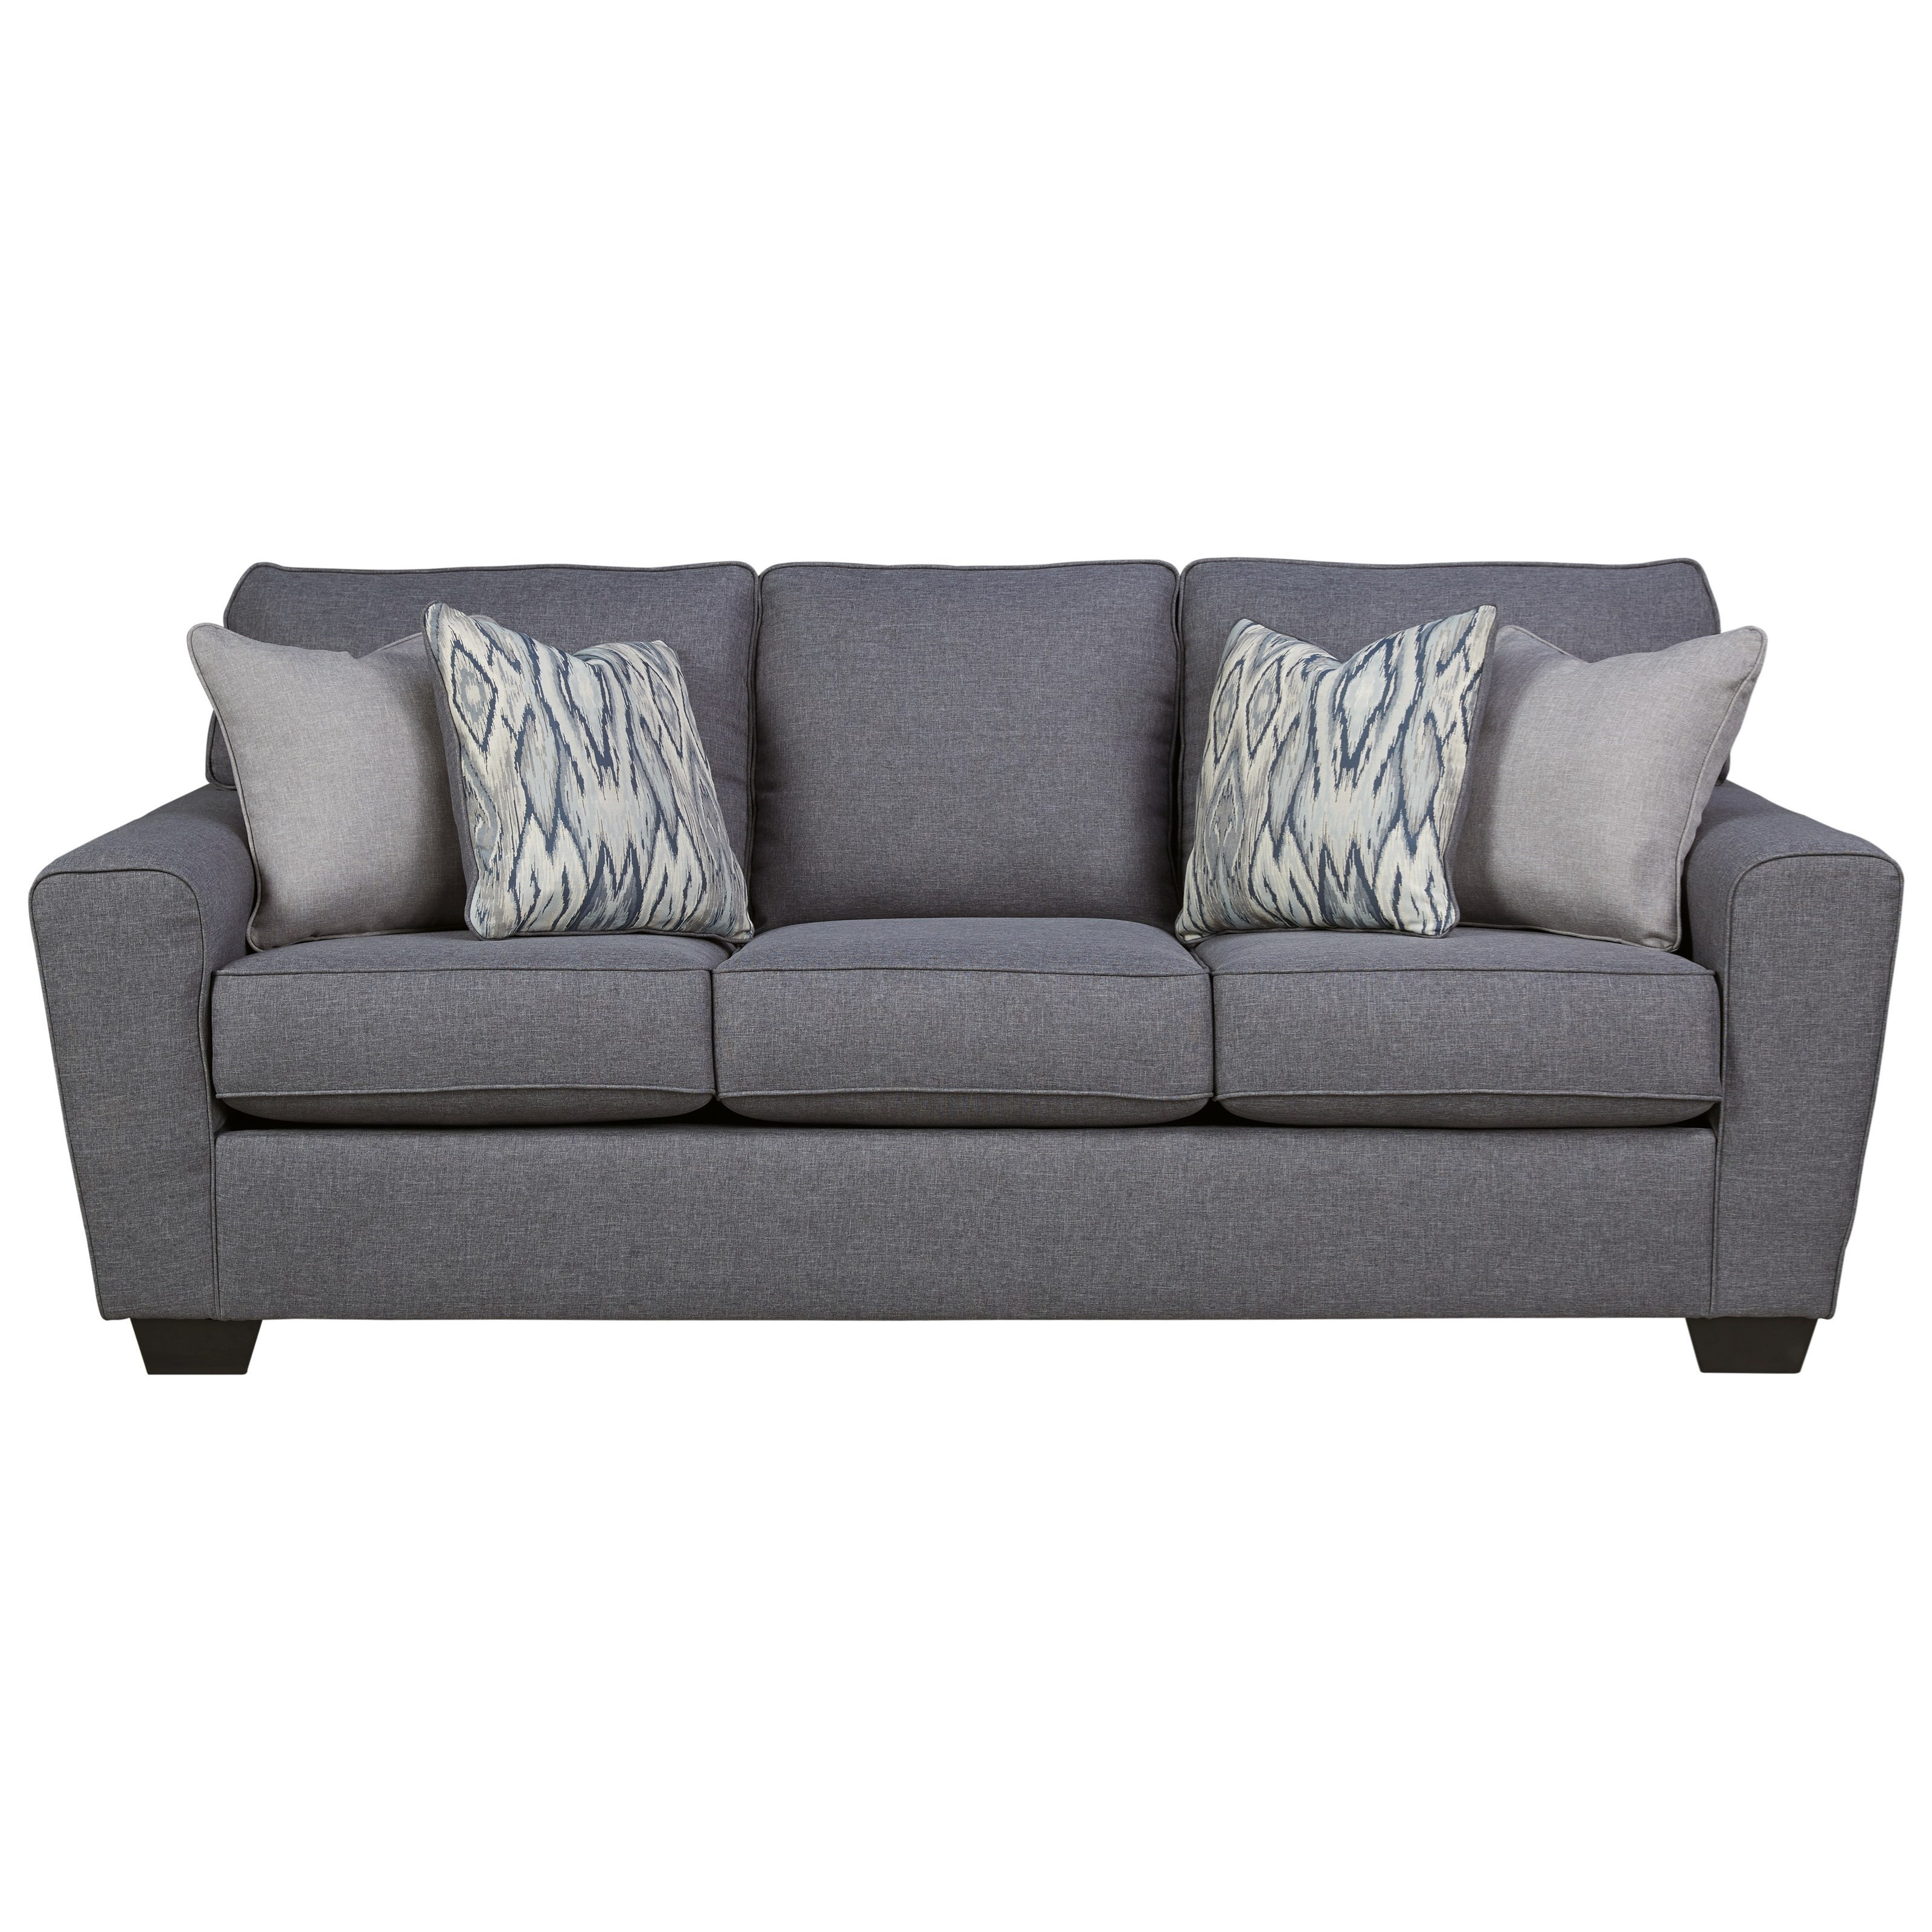 Ashley Furniture Calion Queen Sofa Sleeper   Item Number: 2070239